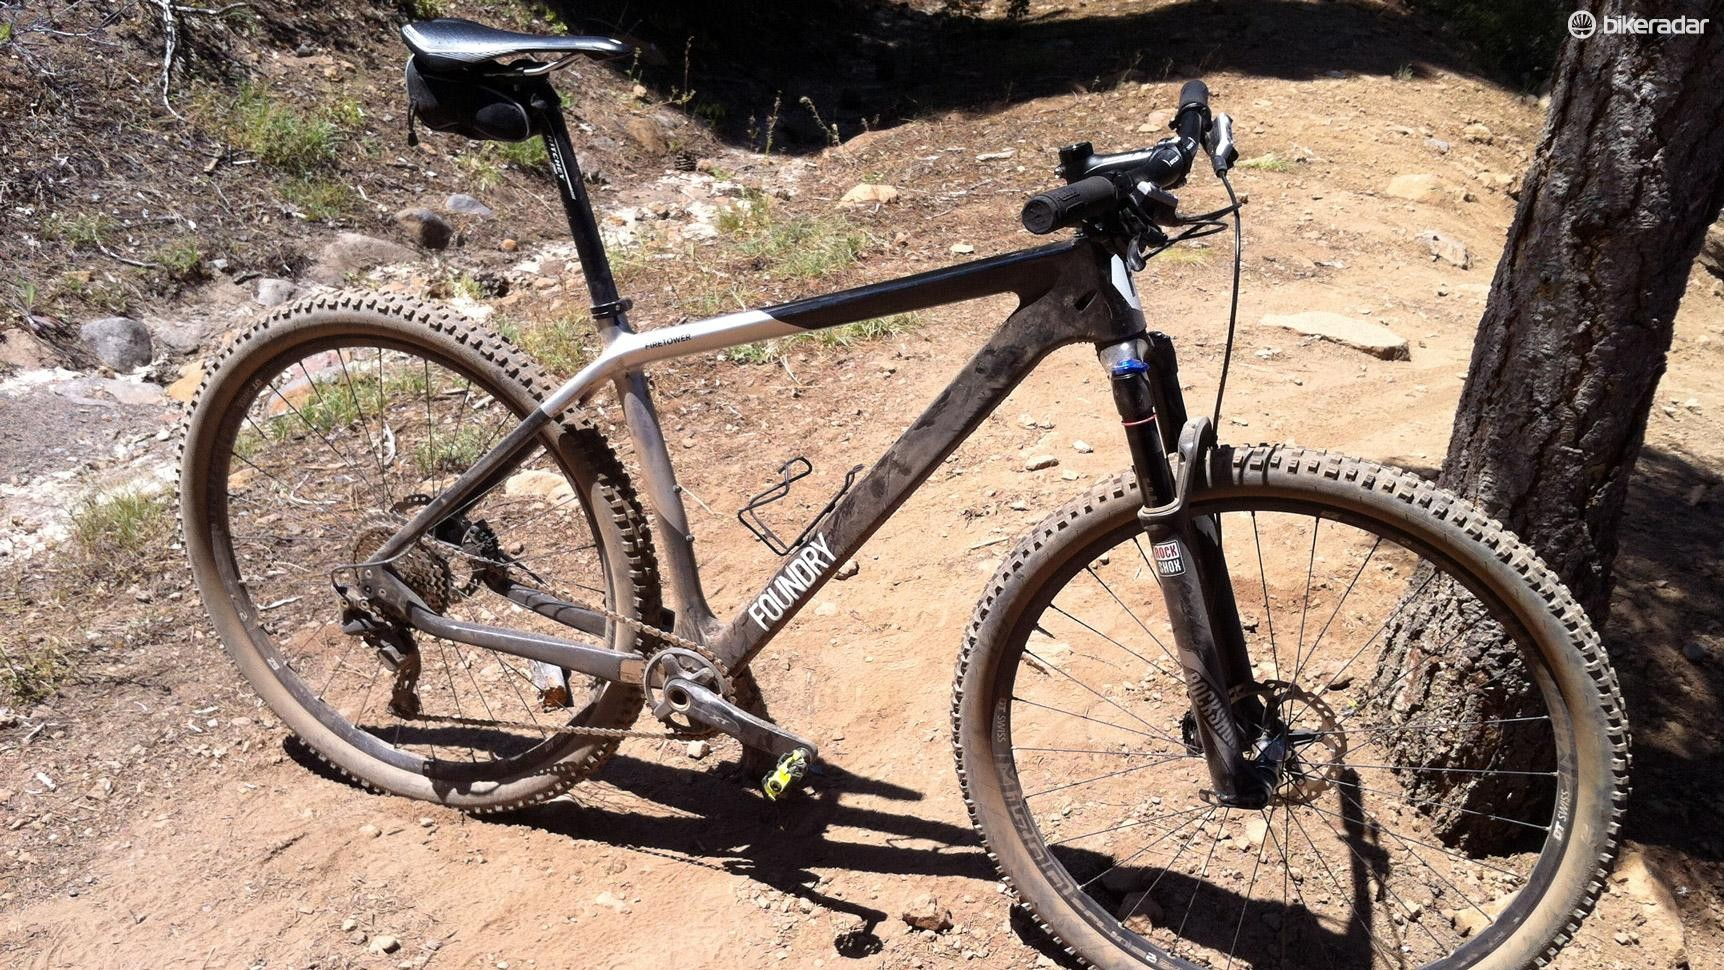 Want XC speed? You can find some right here with Foundry's Firetower XT